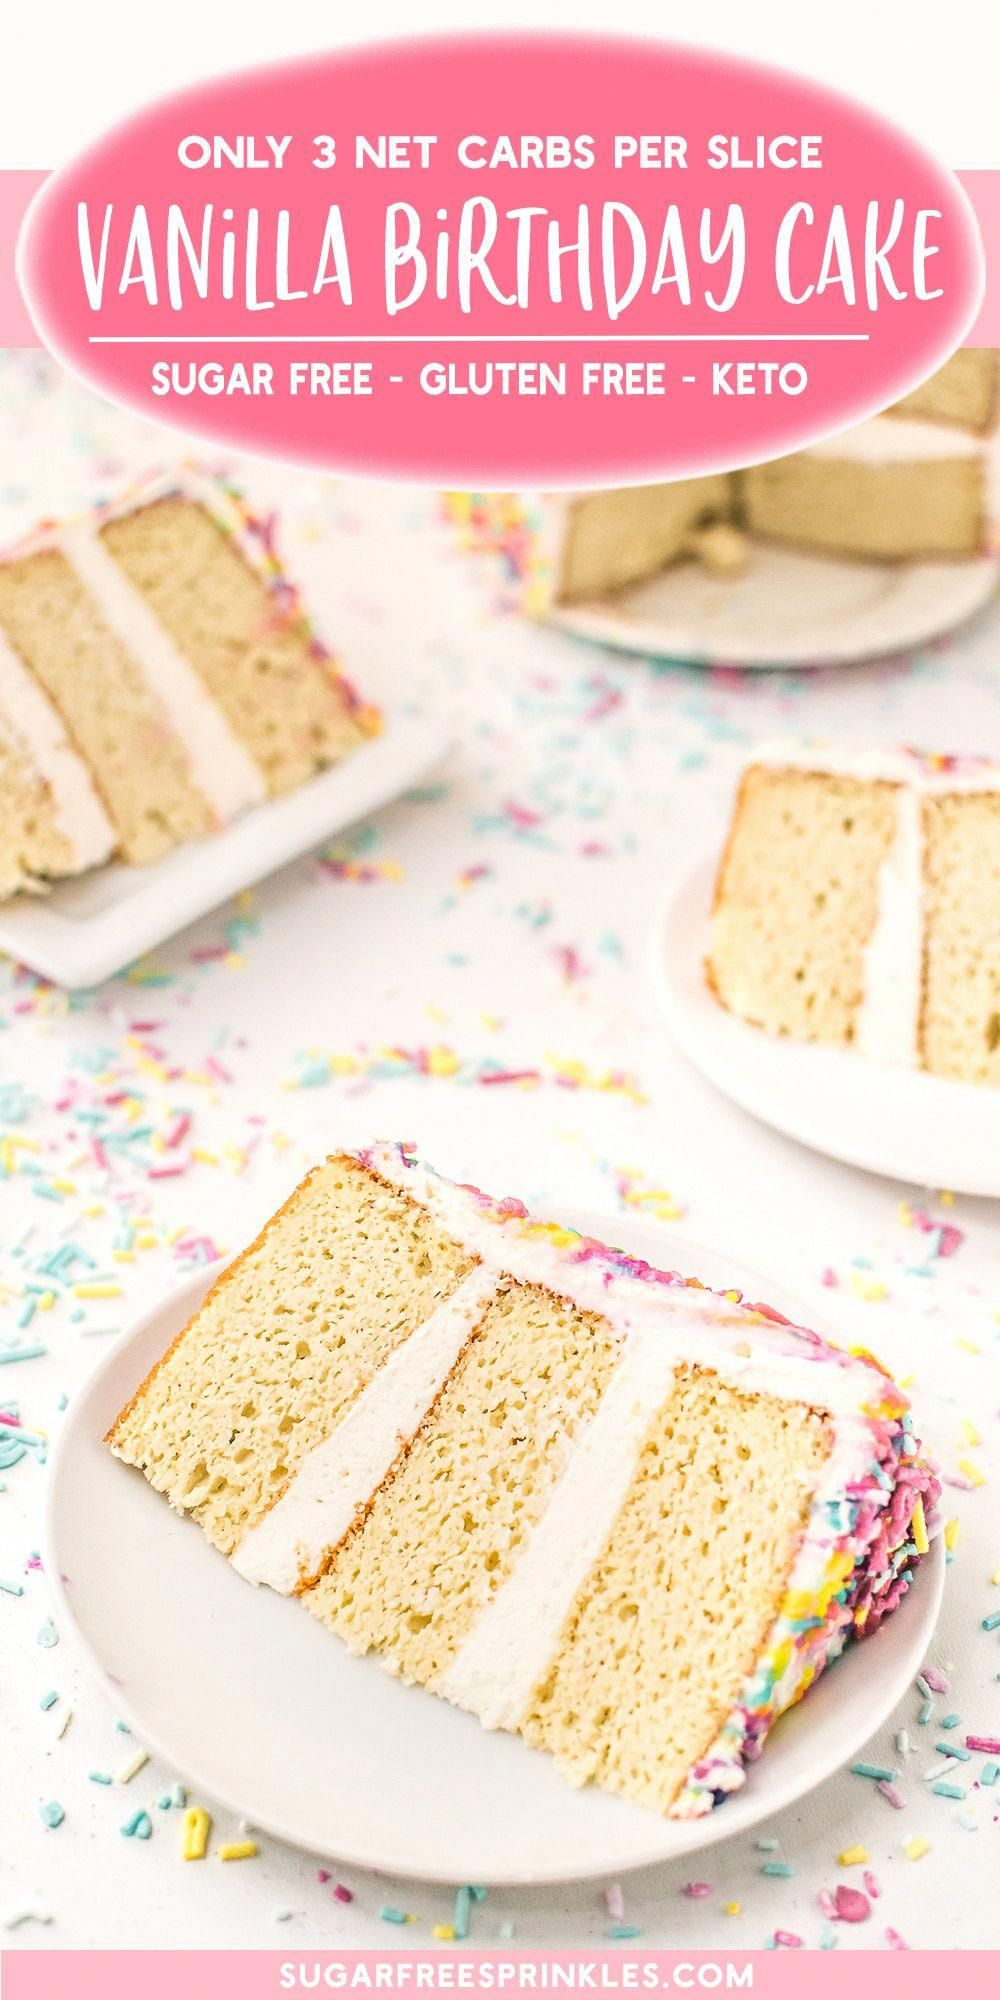 Pin by Amber Cannon on Keto in 2020 Sugar free cake